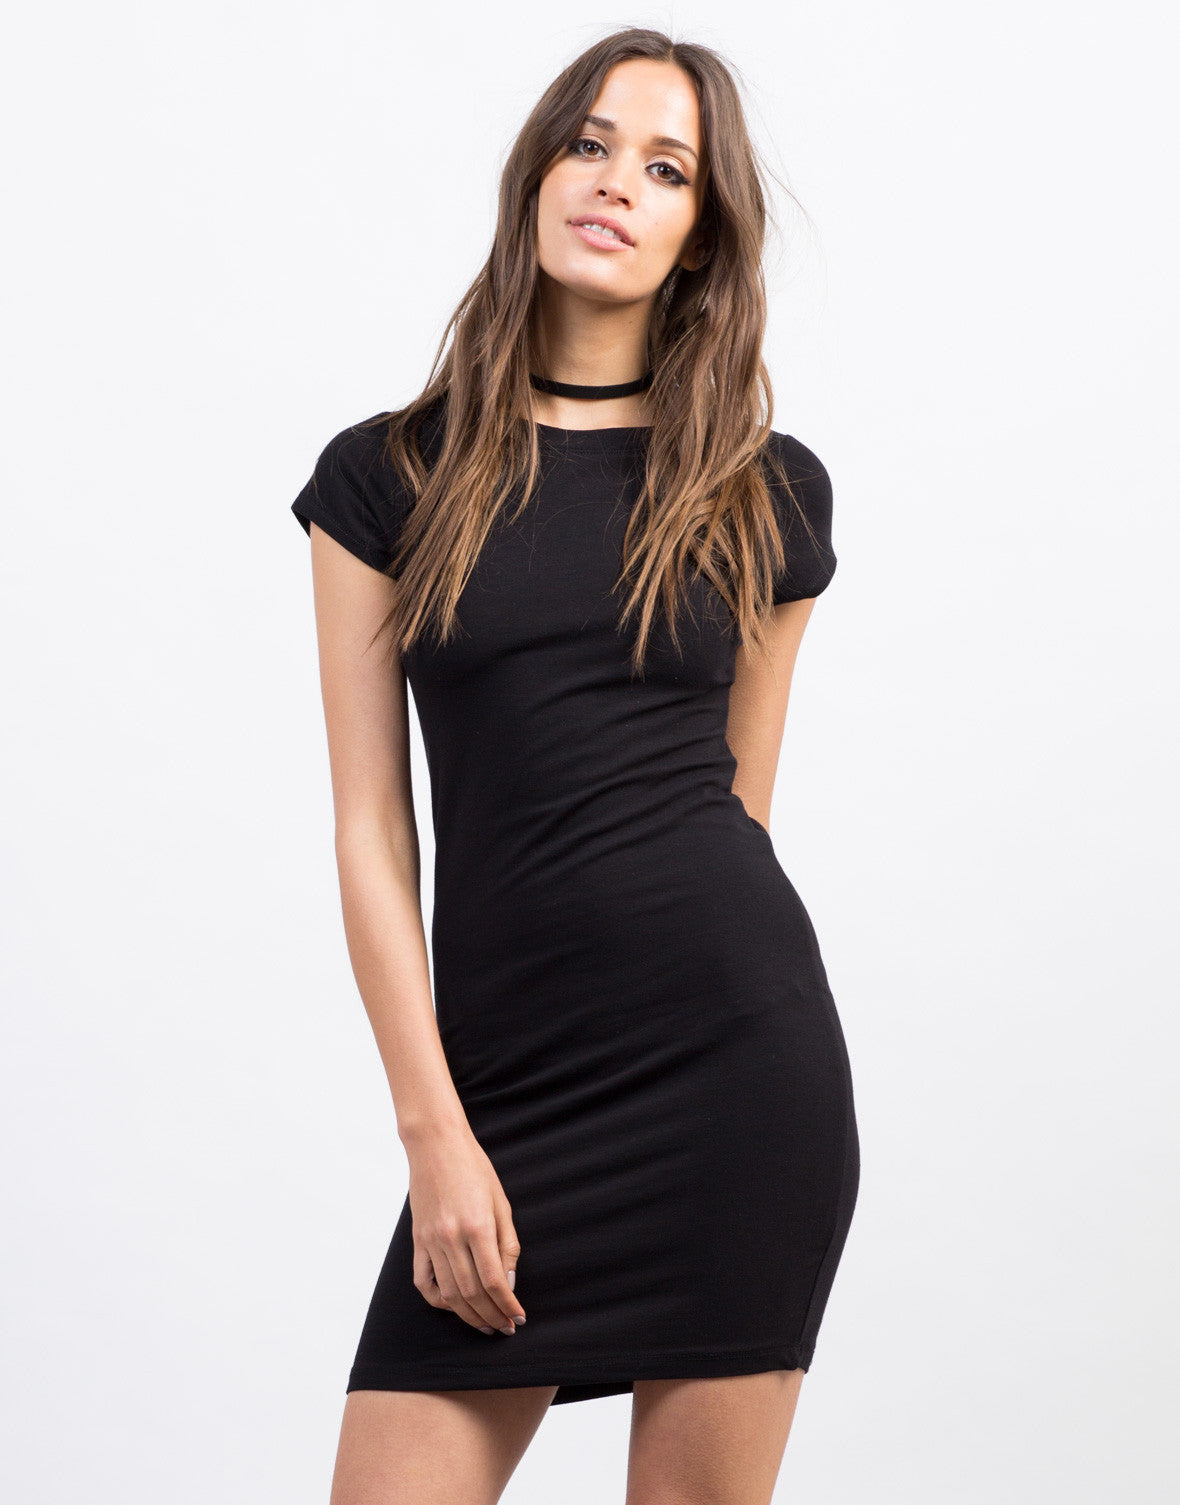 Quality bodycon dress out of a t shirt